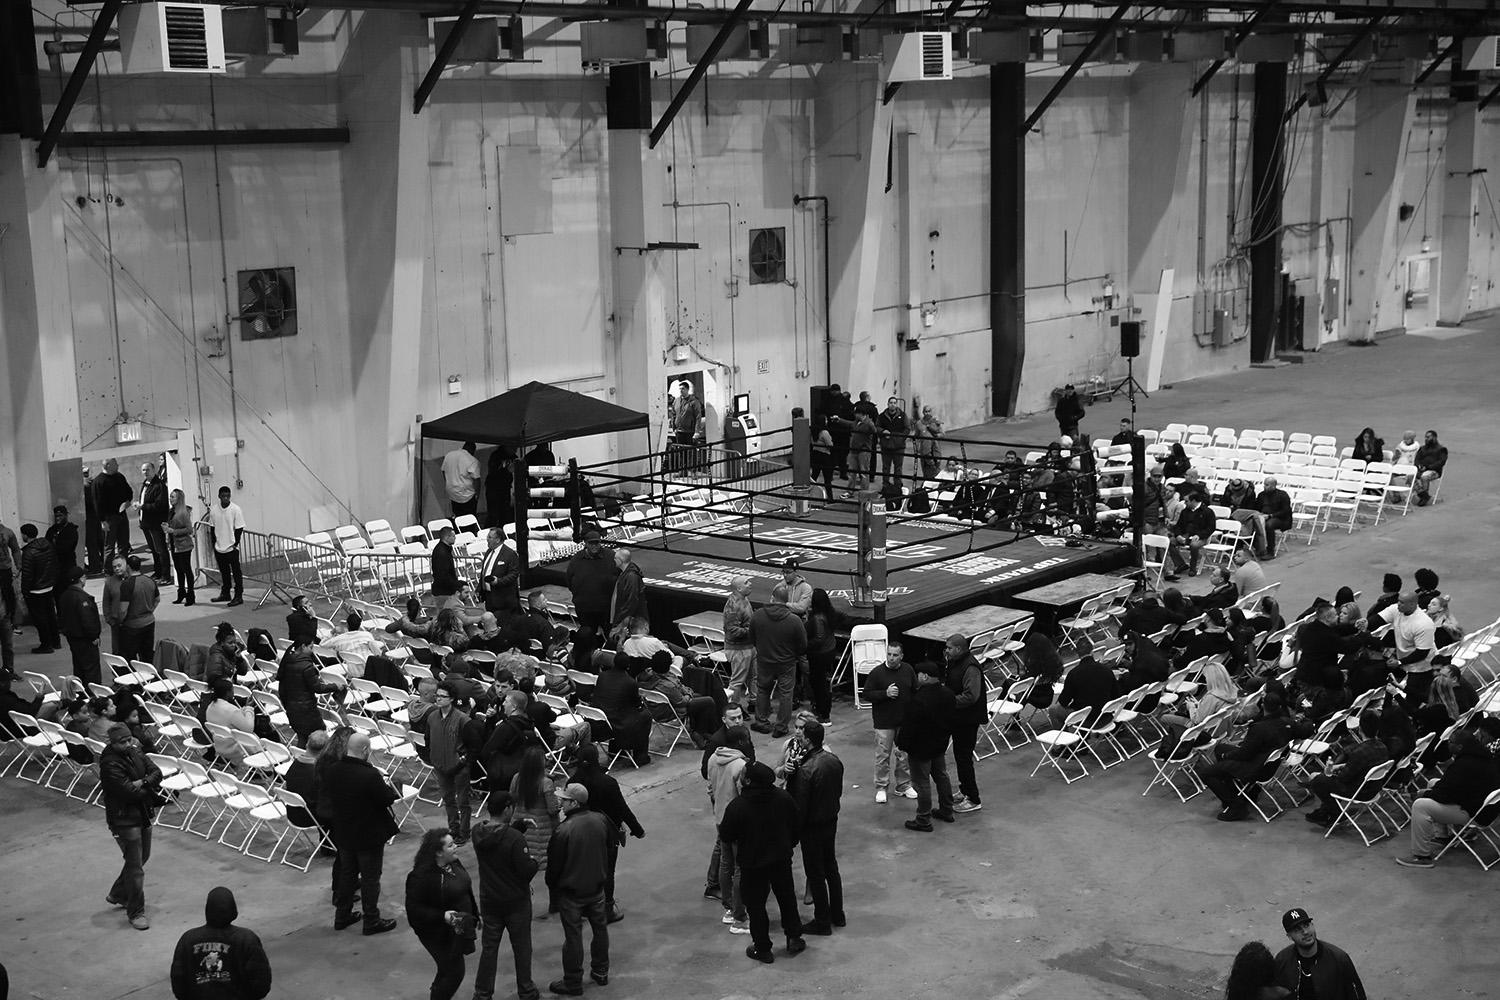 """<p>A shuttered fertilizer plant in the Hunts Point section of the Bronx served as the latest venue for the NYPD boxing event """"Bronx Tough Turkey Tussle"""" in the Bronx, New York, on Nov. 16, 2017. (Photo: Gordon Donovan/Yahoo News) </p>"""